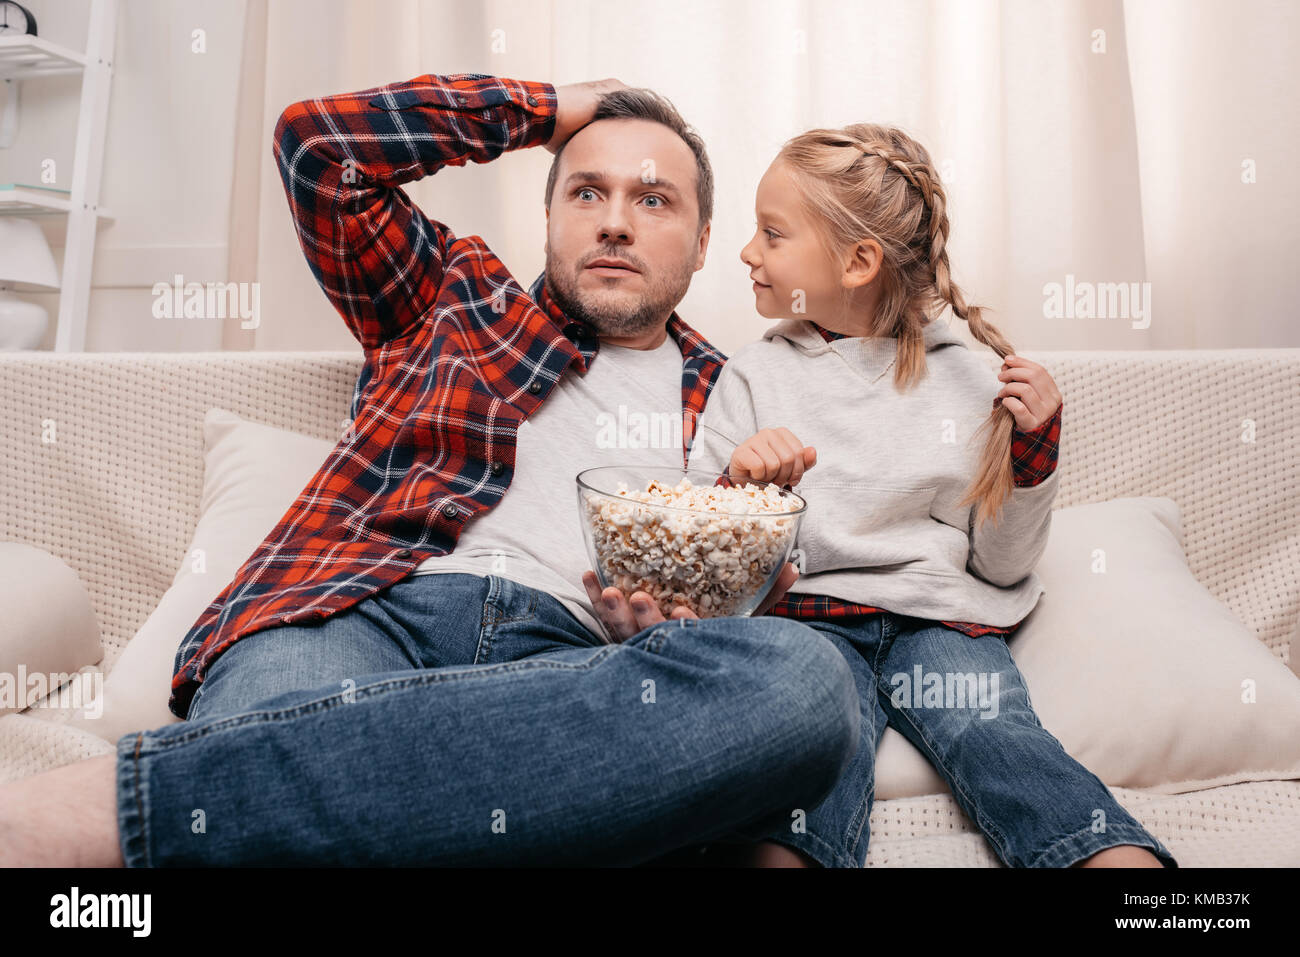 father and daughter eating popcorn - Stock Image